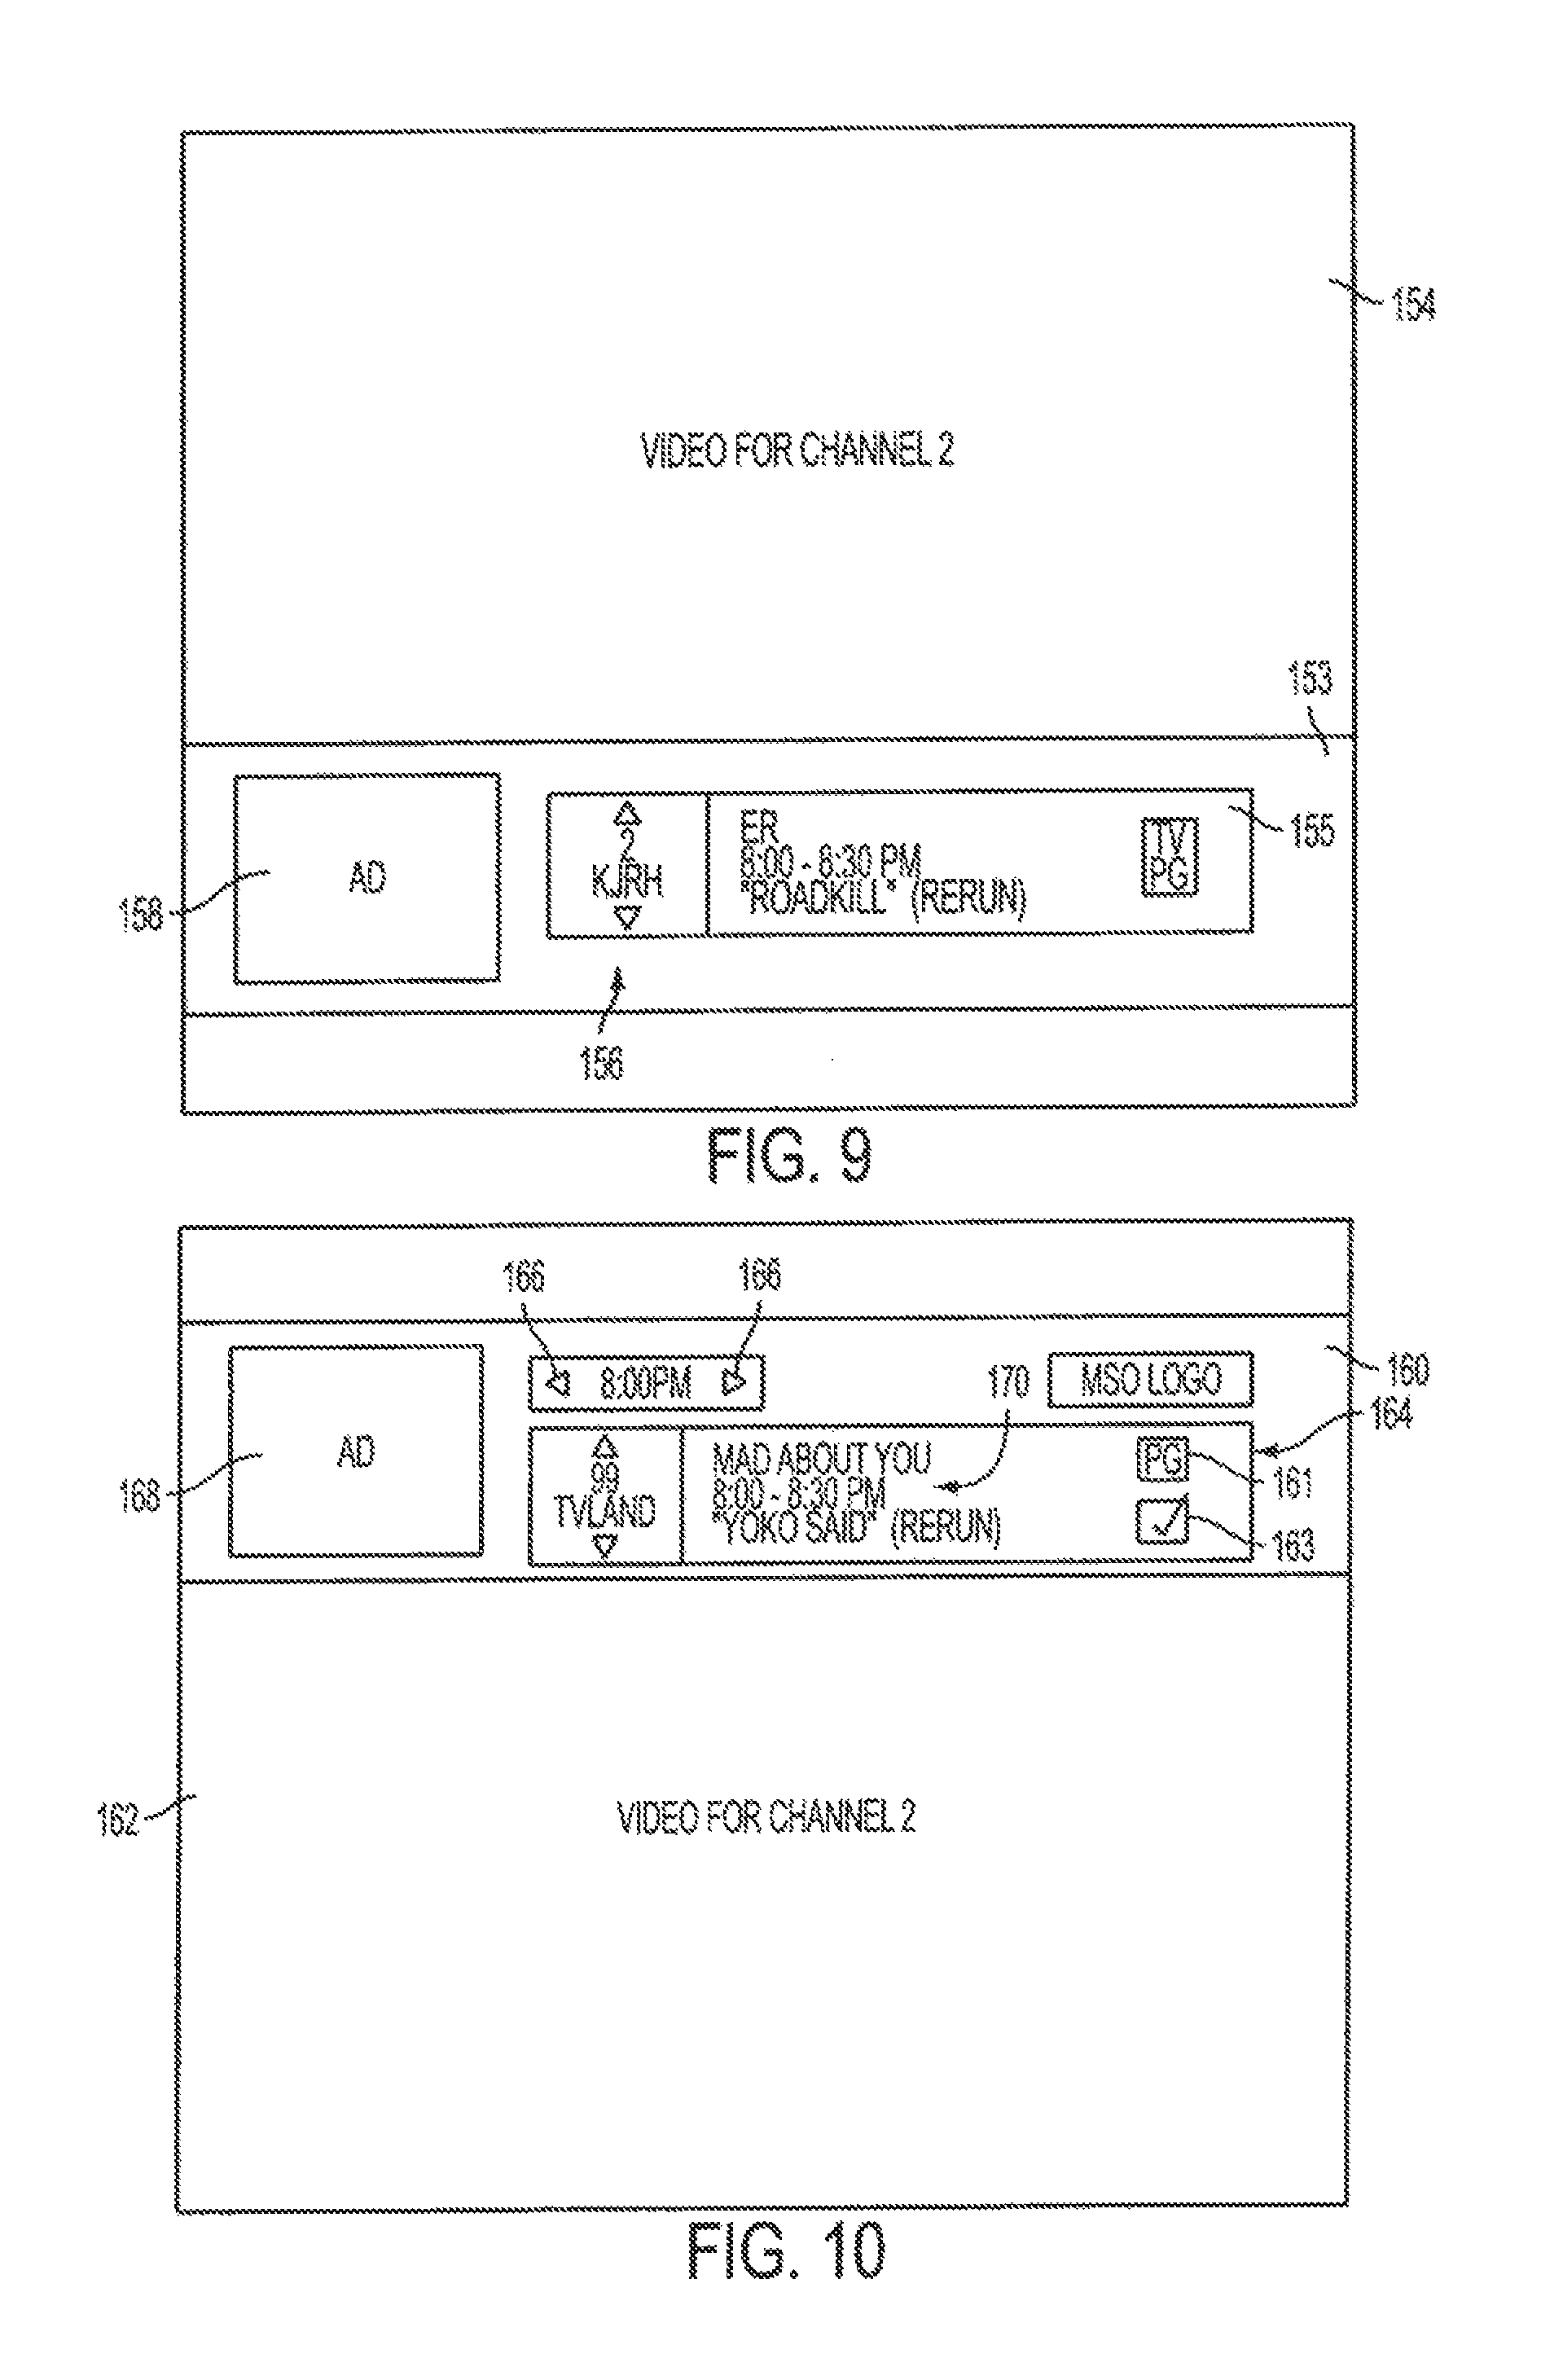 4 Channel Speaker Wiring Diagram Ricerche Correlate A Us9071872b2 Interactive Television Systems With Digital Video Recording And Adjustable Reminders Google Patents